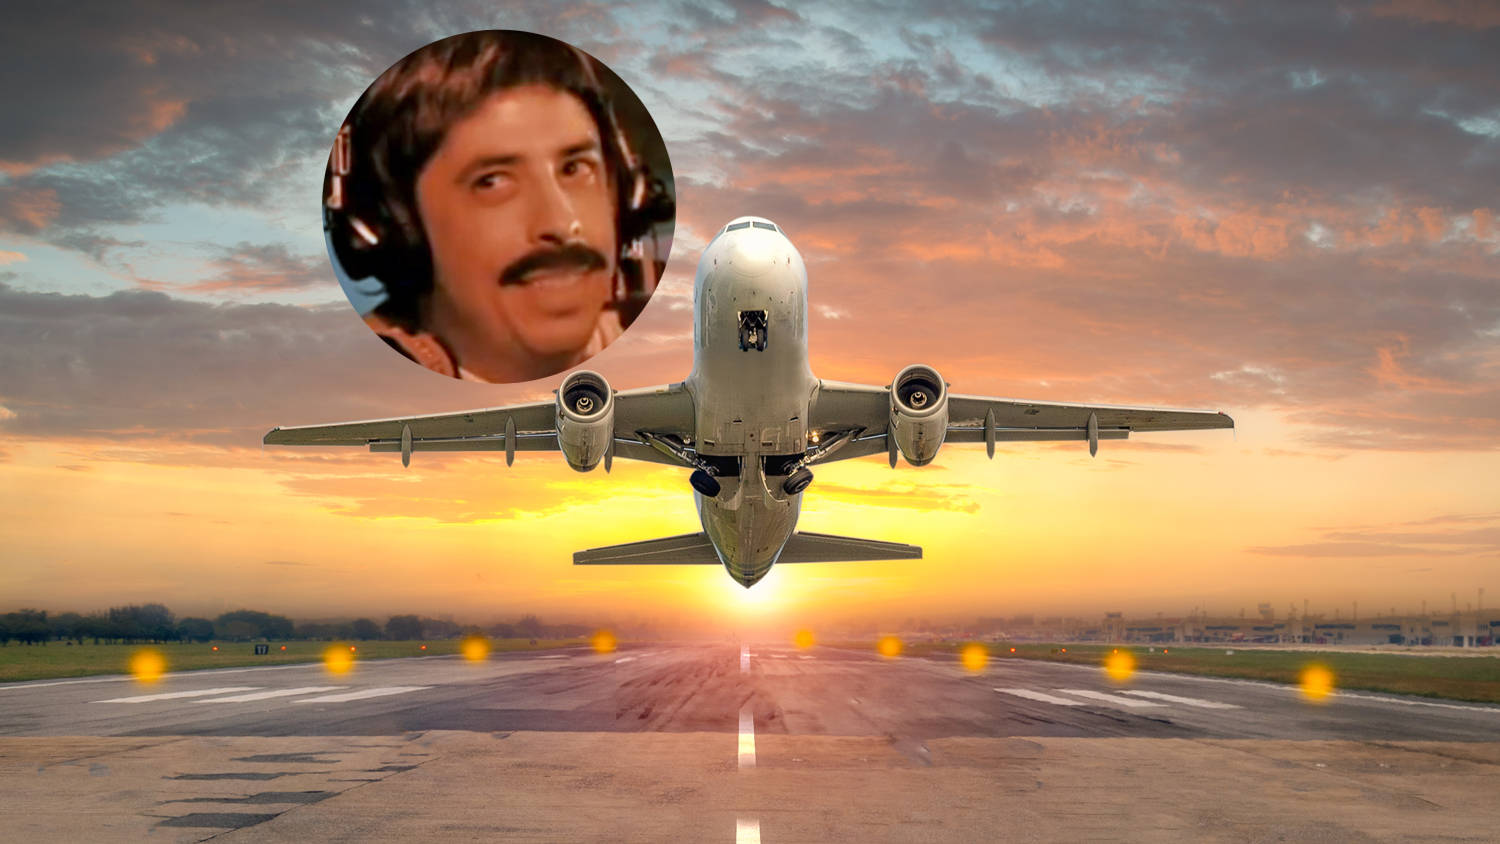 The best songs about planes and flying